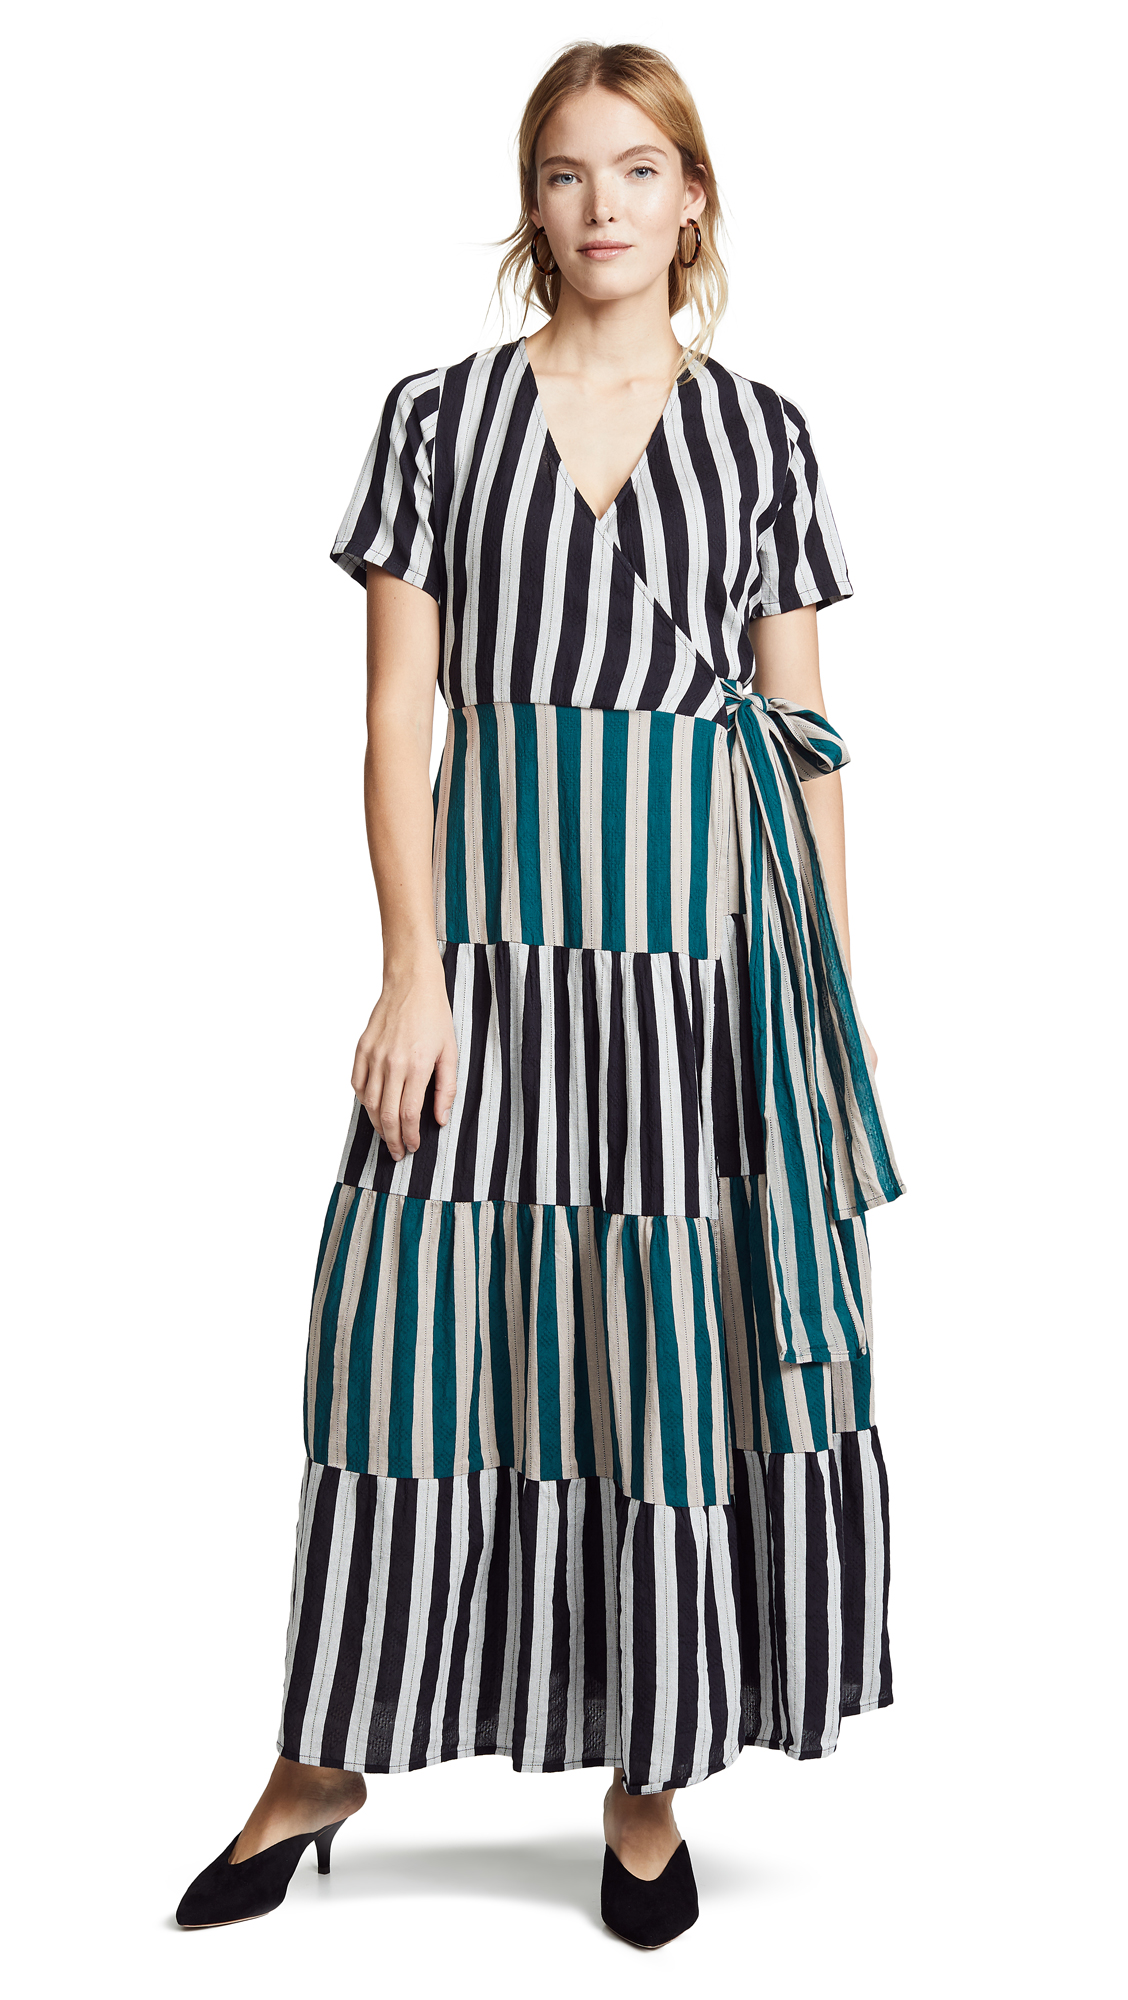 ace & jig Ellis Dress